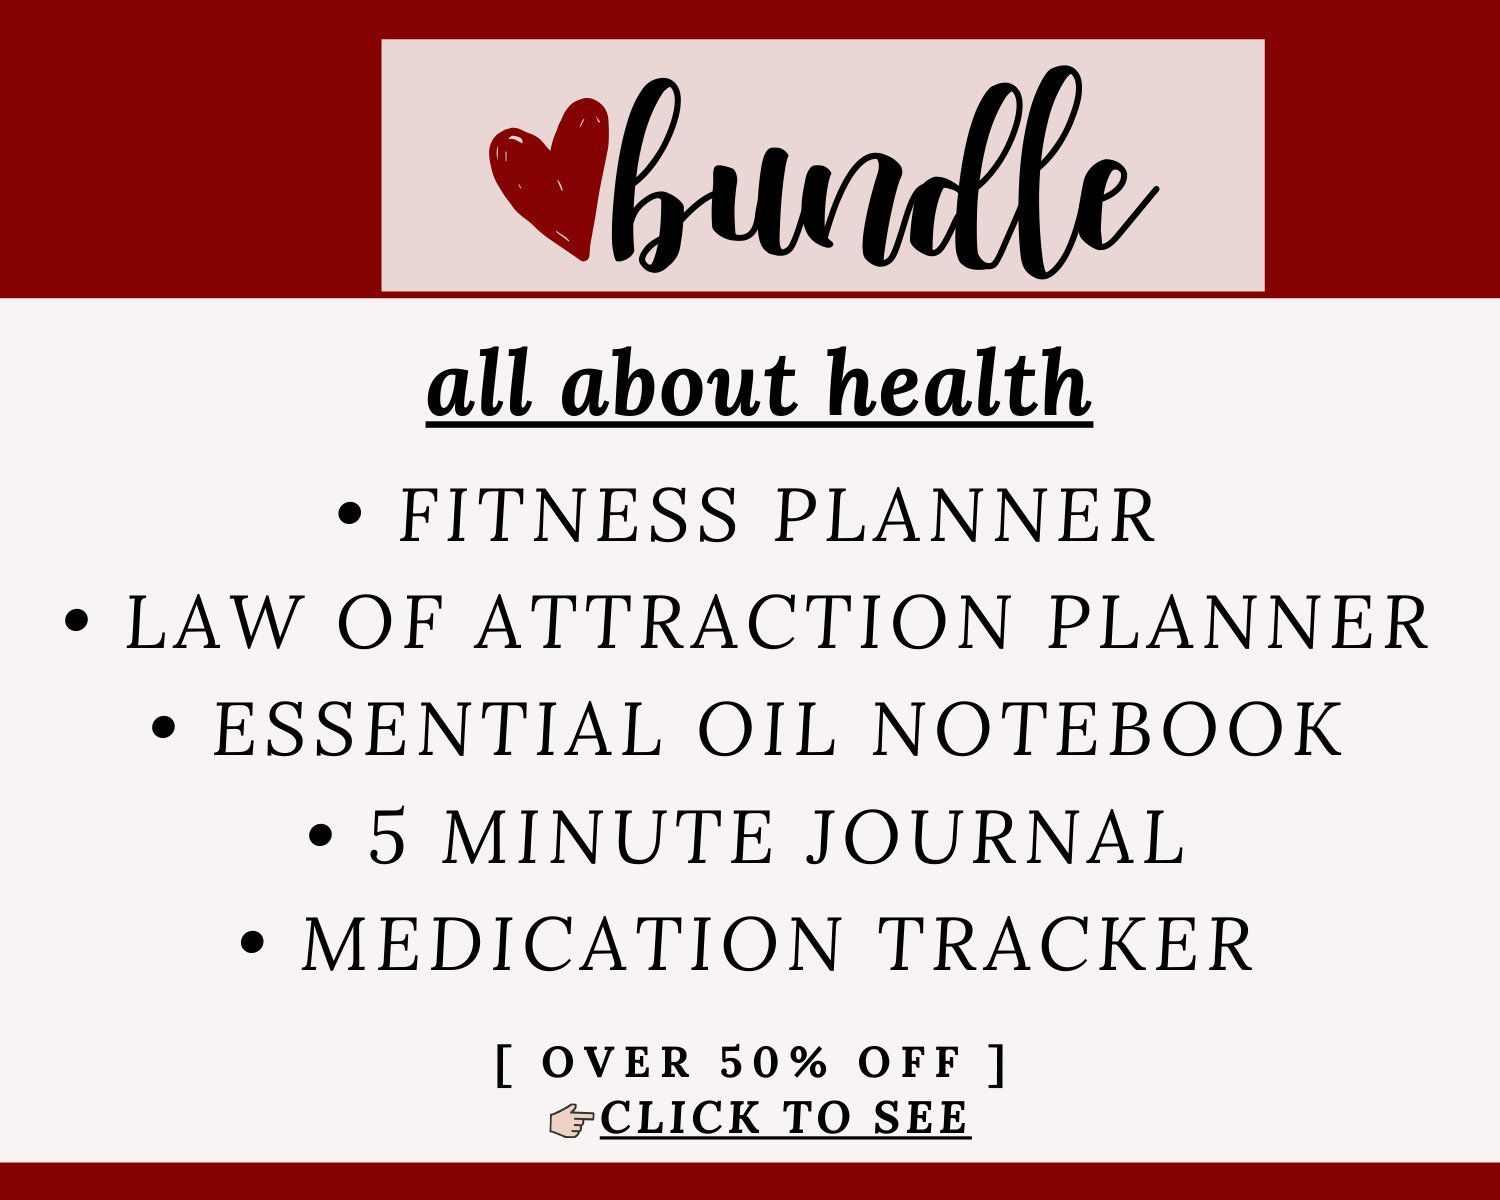 BUNDLE for HEALTH | Fitness Planner, Law of Attraction Planner, 5 Minute Daily Journal, Essential Oi...